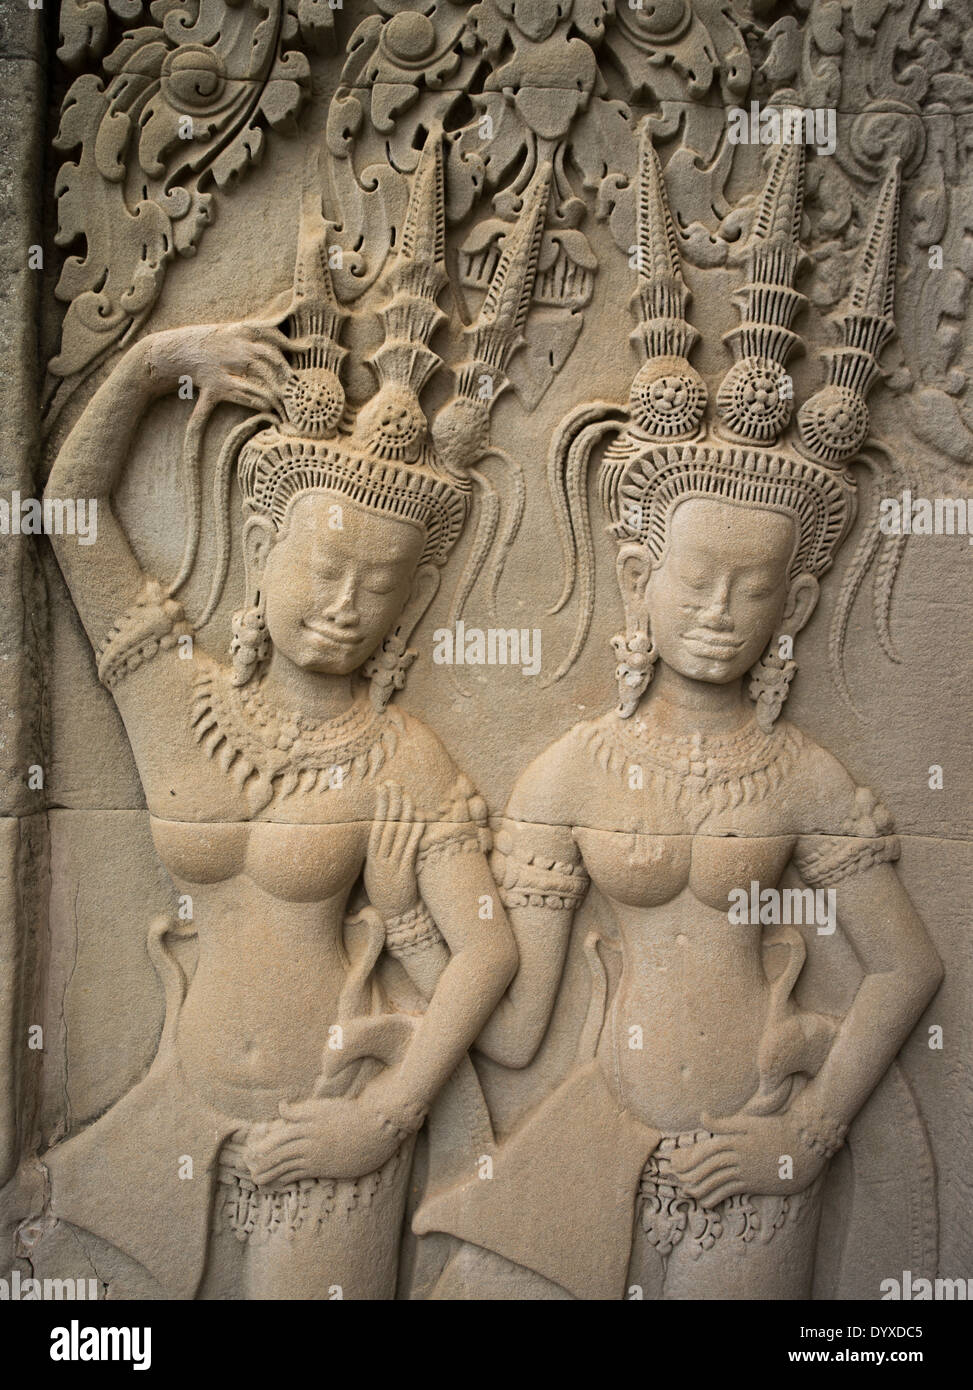 Apsara sandstone bas relief carvings at angkor wat